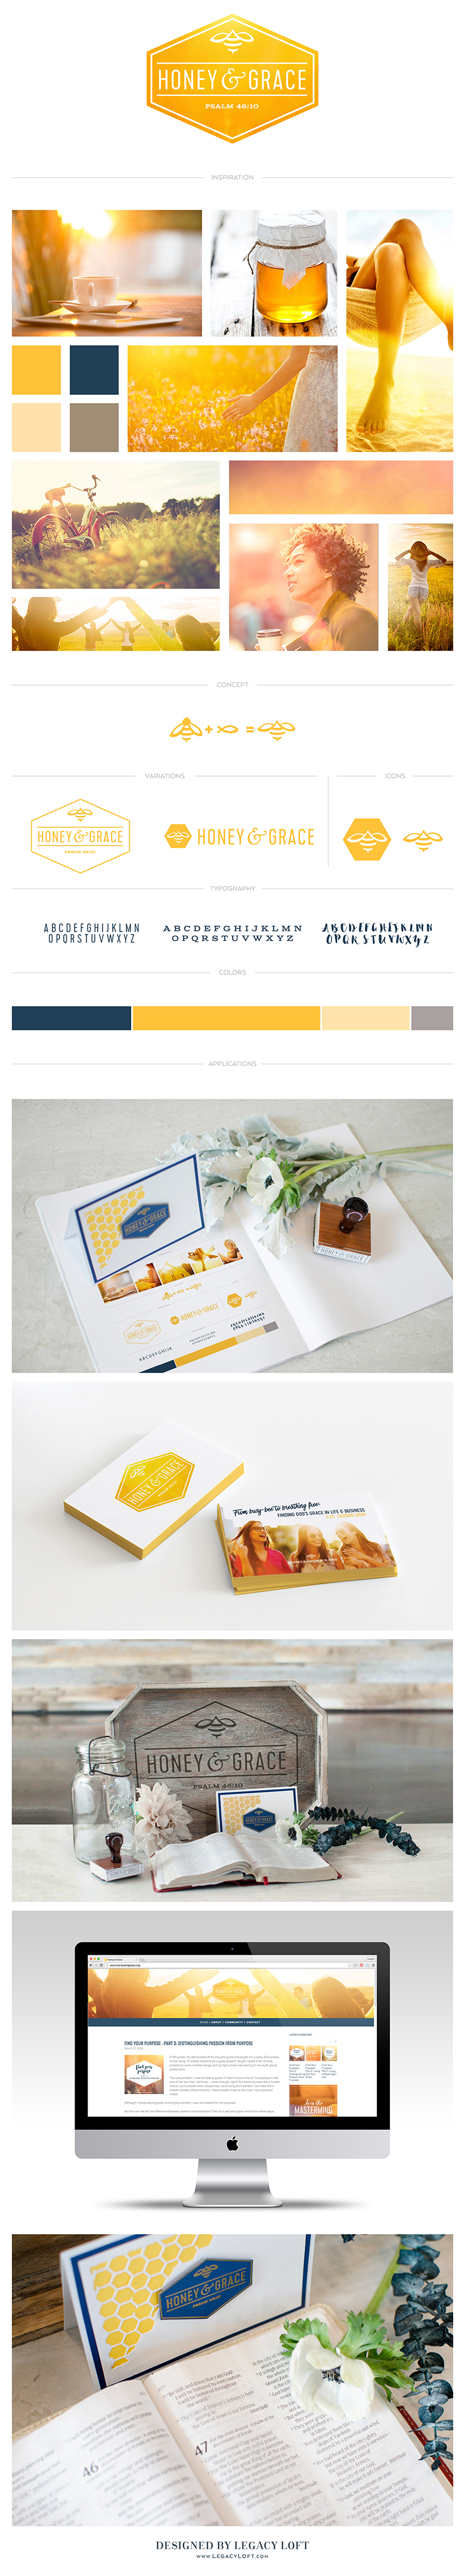 honey-and-grace-blog-christian-branding-graphic-design